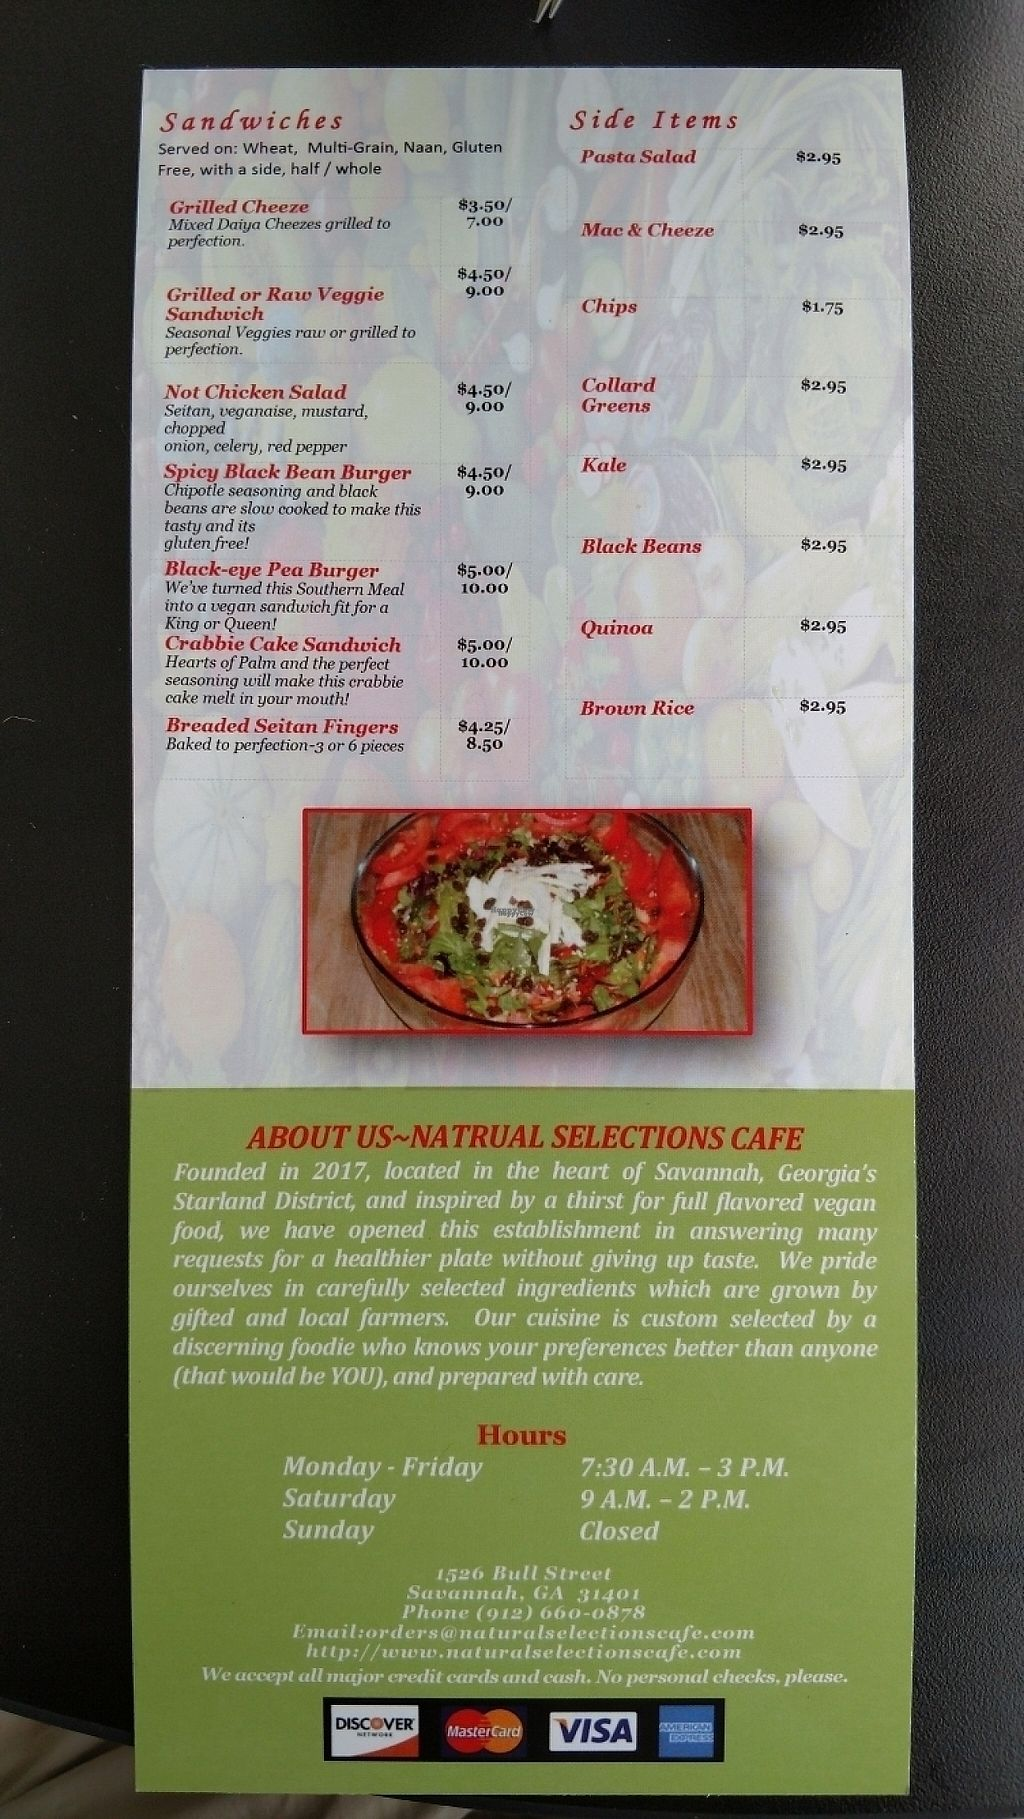 """Photo of Natural Selections Cafe  by <a href=""""/members/profile/nathanb"""">nathanb</a> <br/>Menu <br/> March 25, 2017  - <a href='/contact/abuse/image/88434/240850'>Report</a>"""